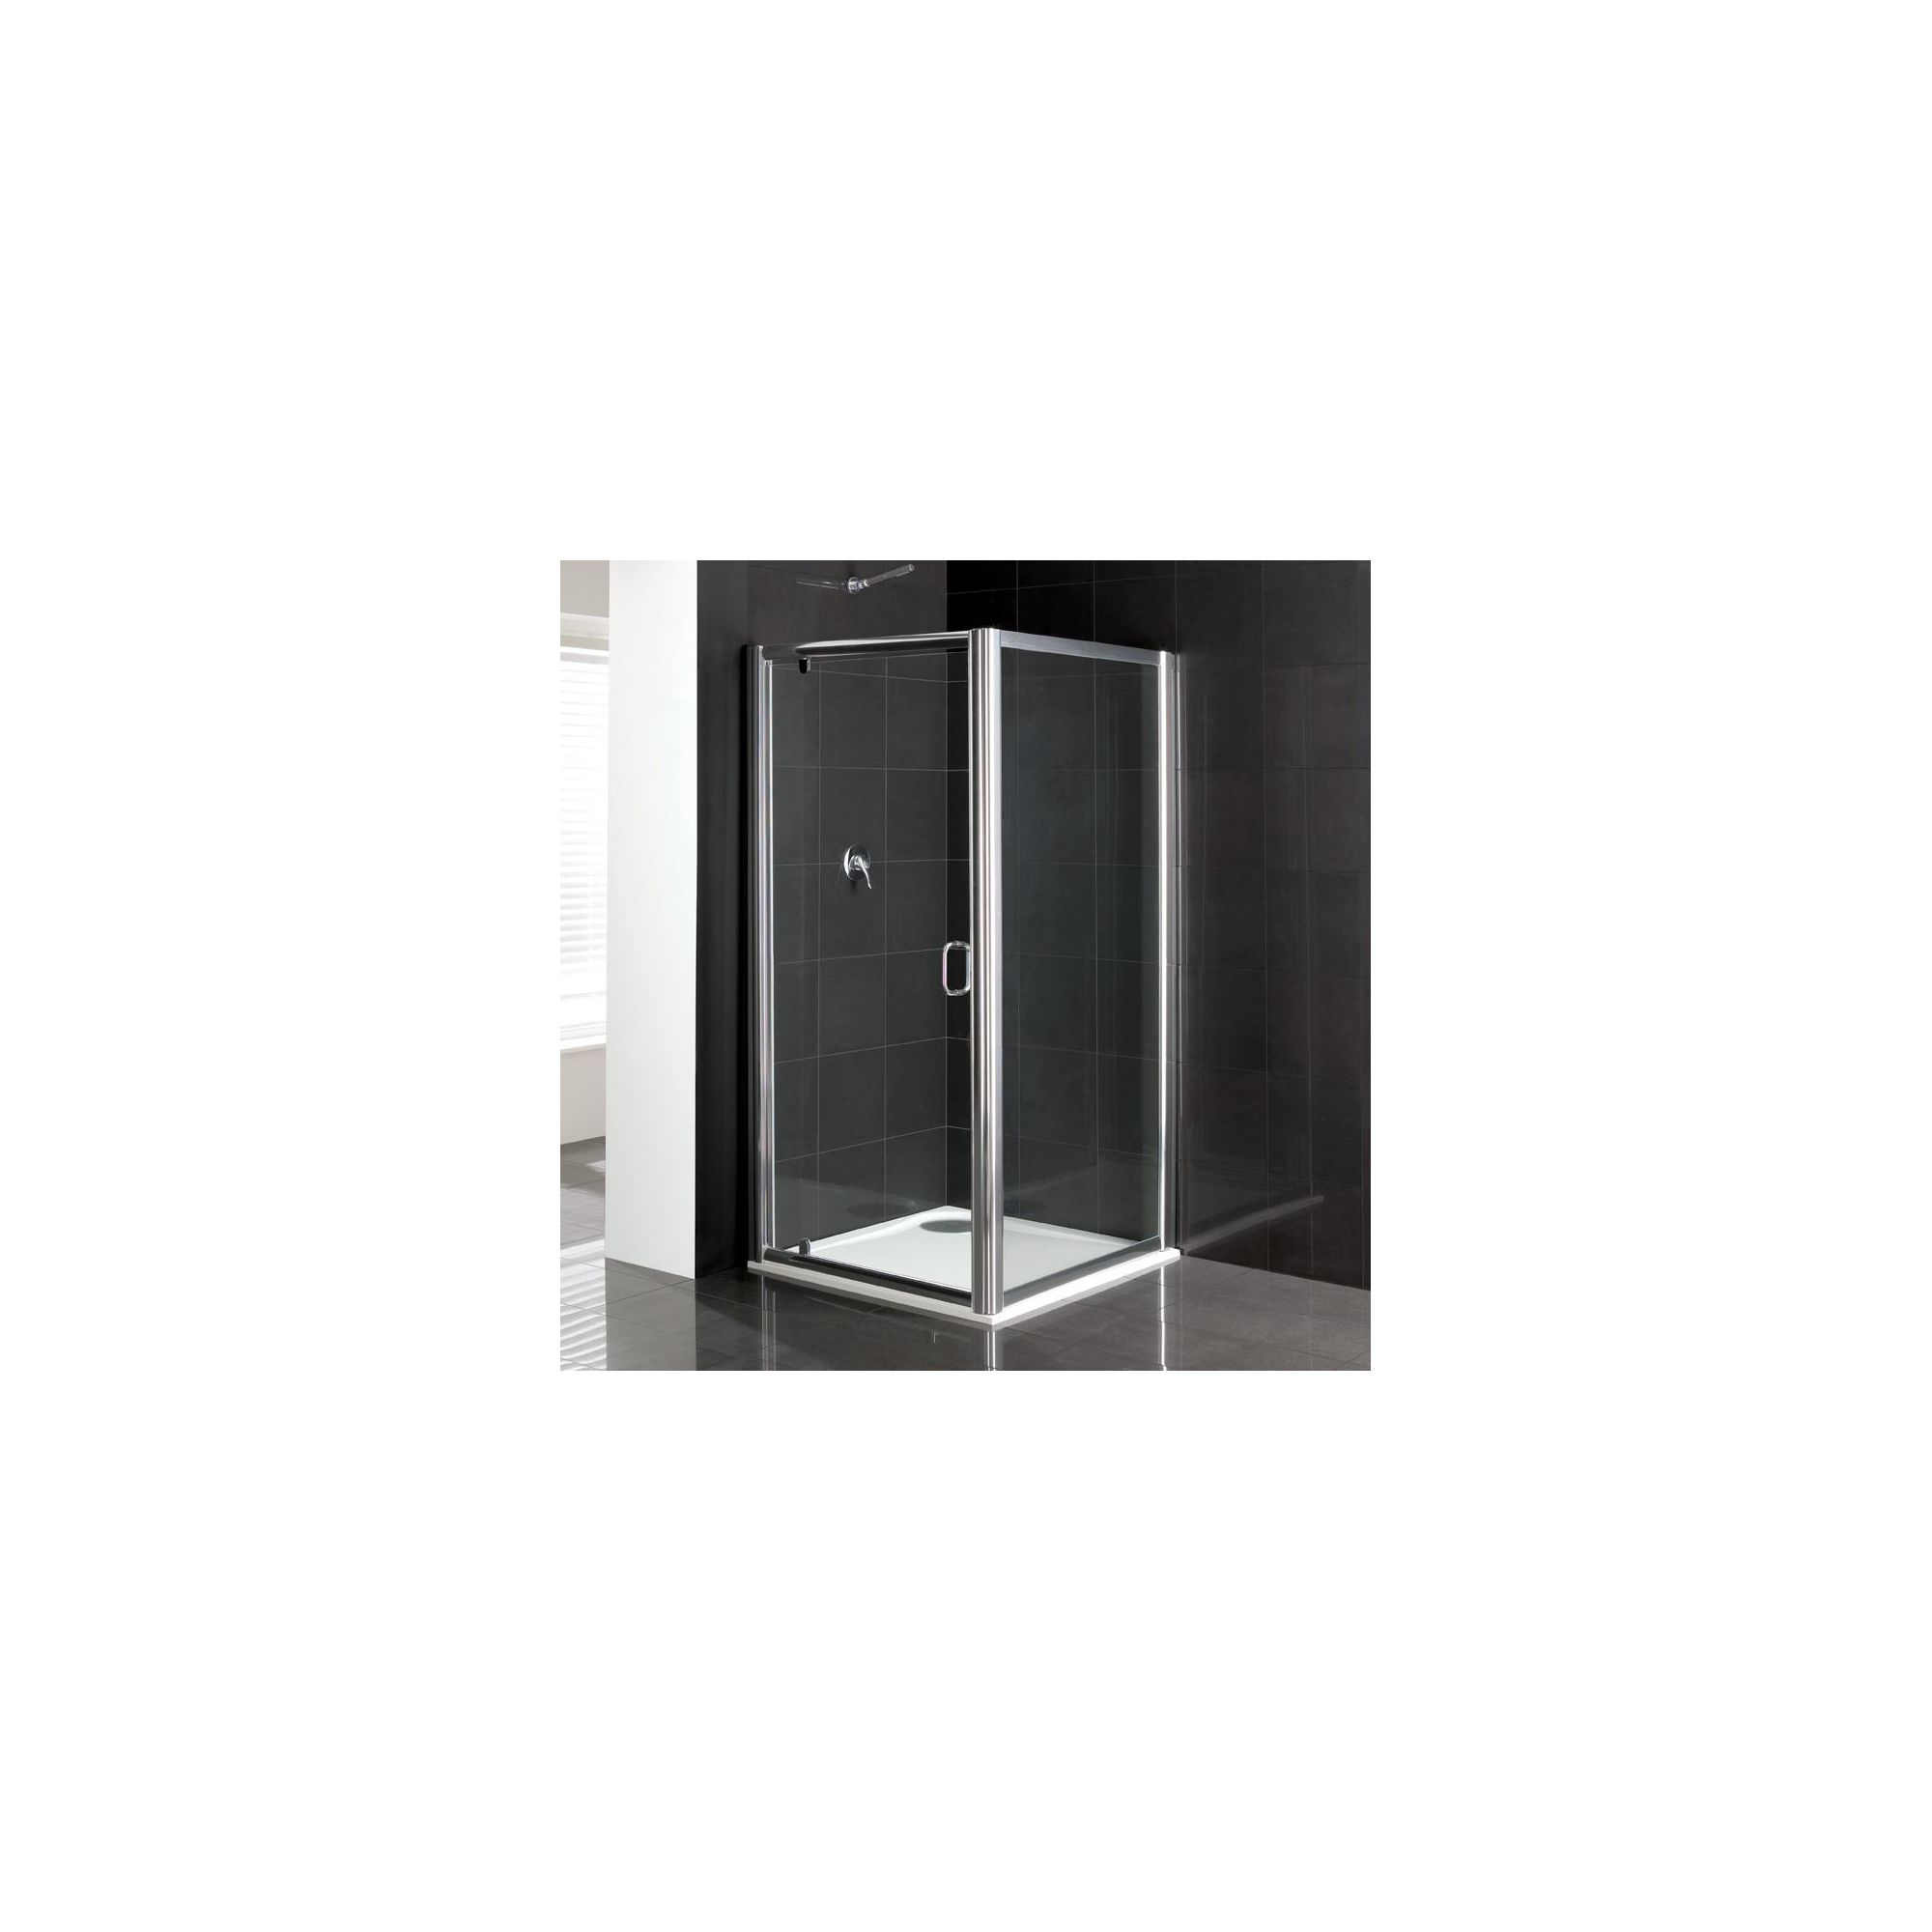 Duchy Elite Silver Pivot Door Shower Enclosure with Towel Rail, 1000mm x 760mm, Standard Tray, 6mm Glass at Tesco Direct